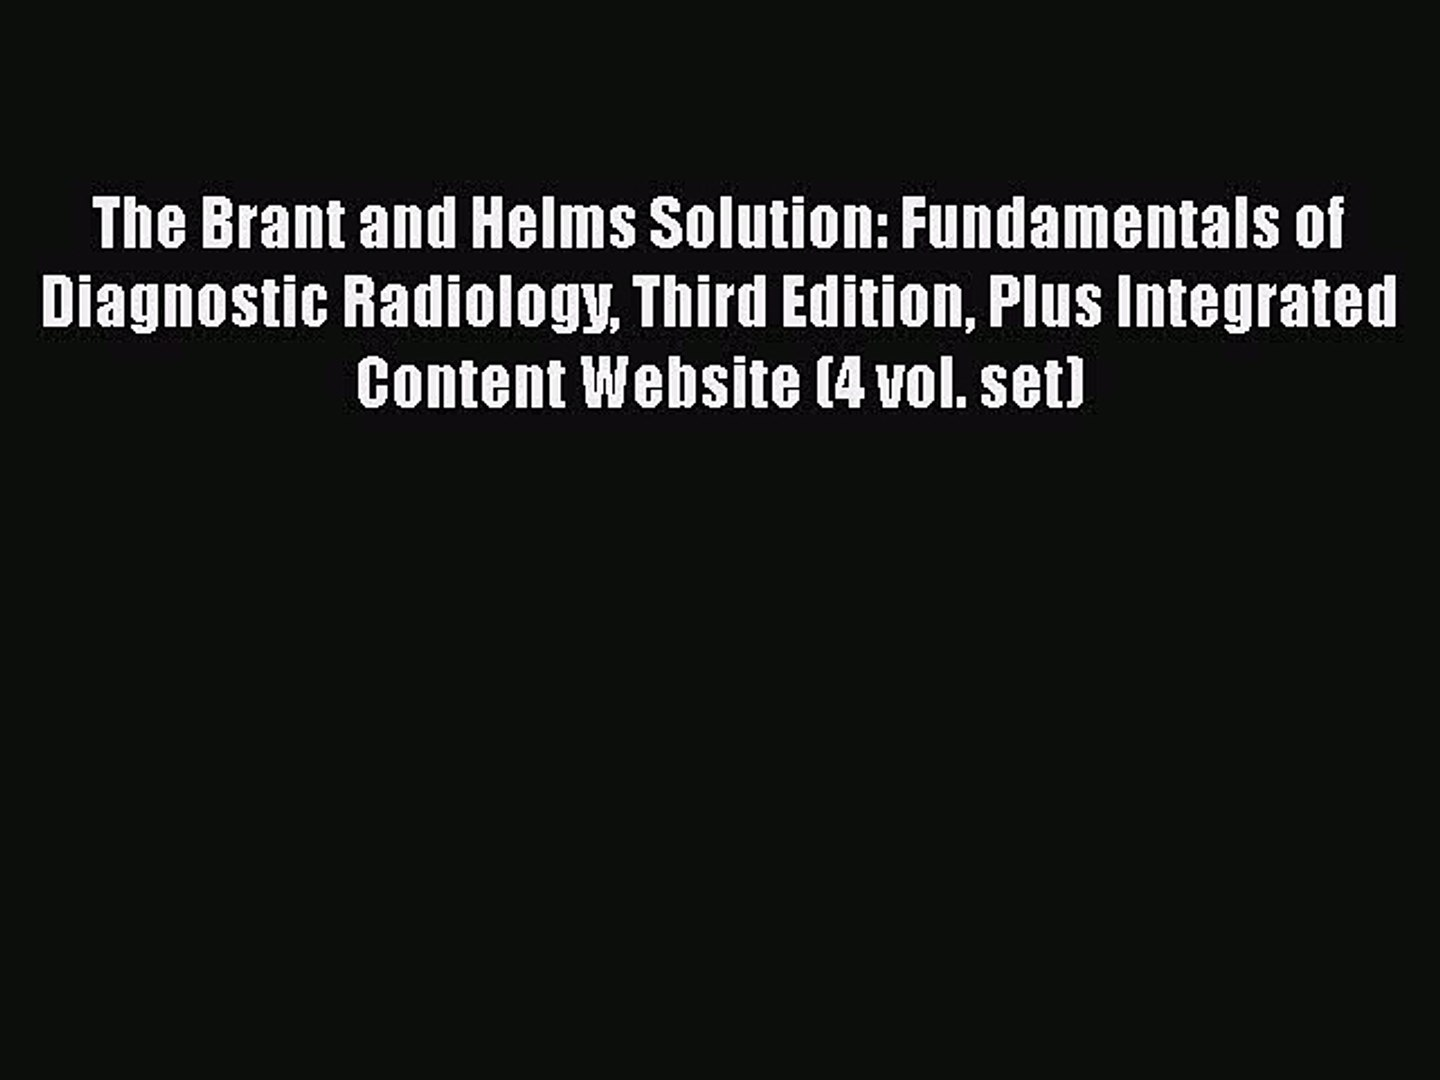 [PDF] The Brant and Helms Solution: Fundamentals of Diagnostic Radiology Third Edition Plus